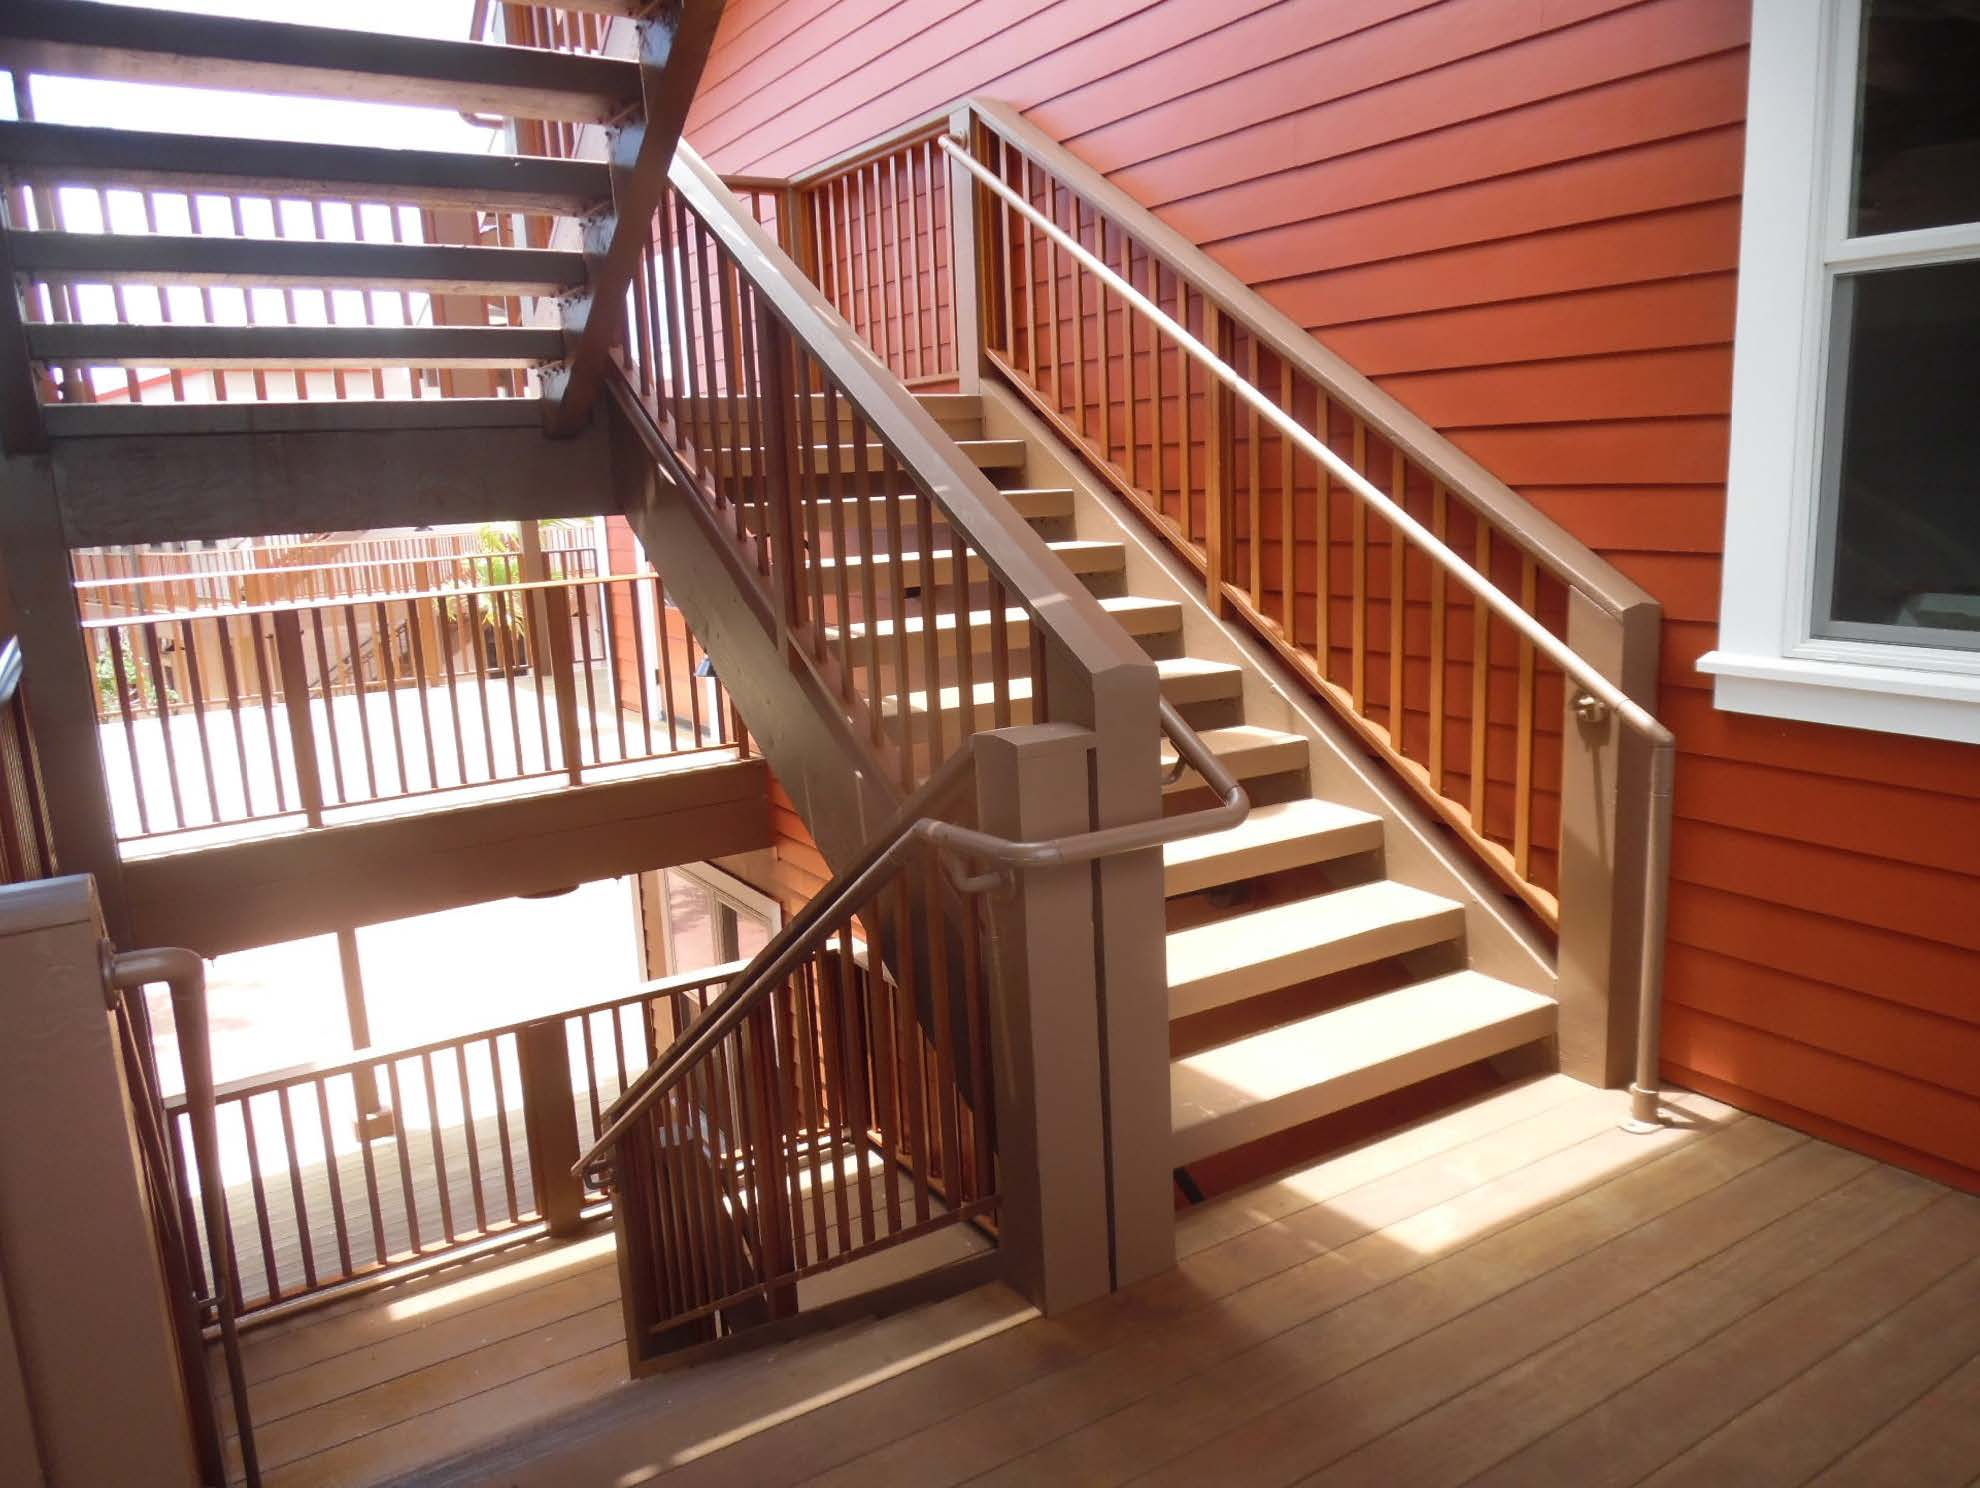 ADA compliant handrail on stairs switchback